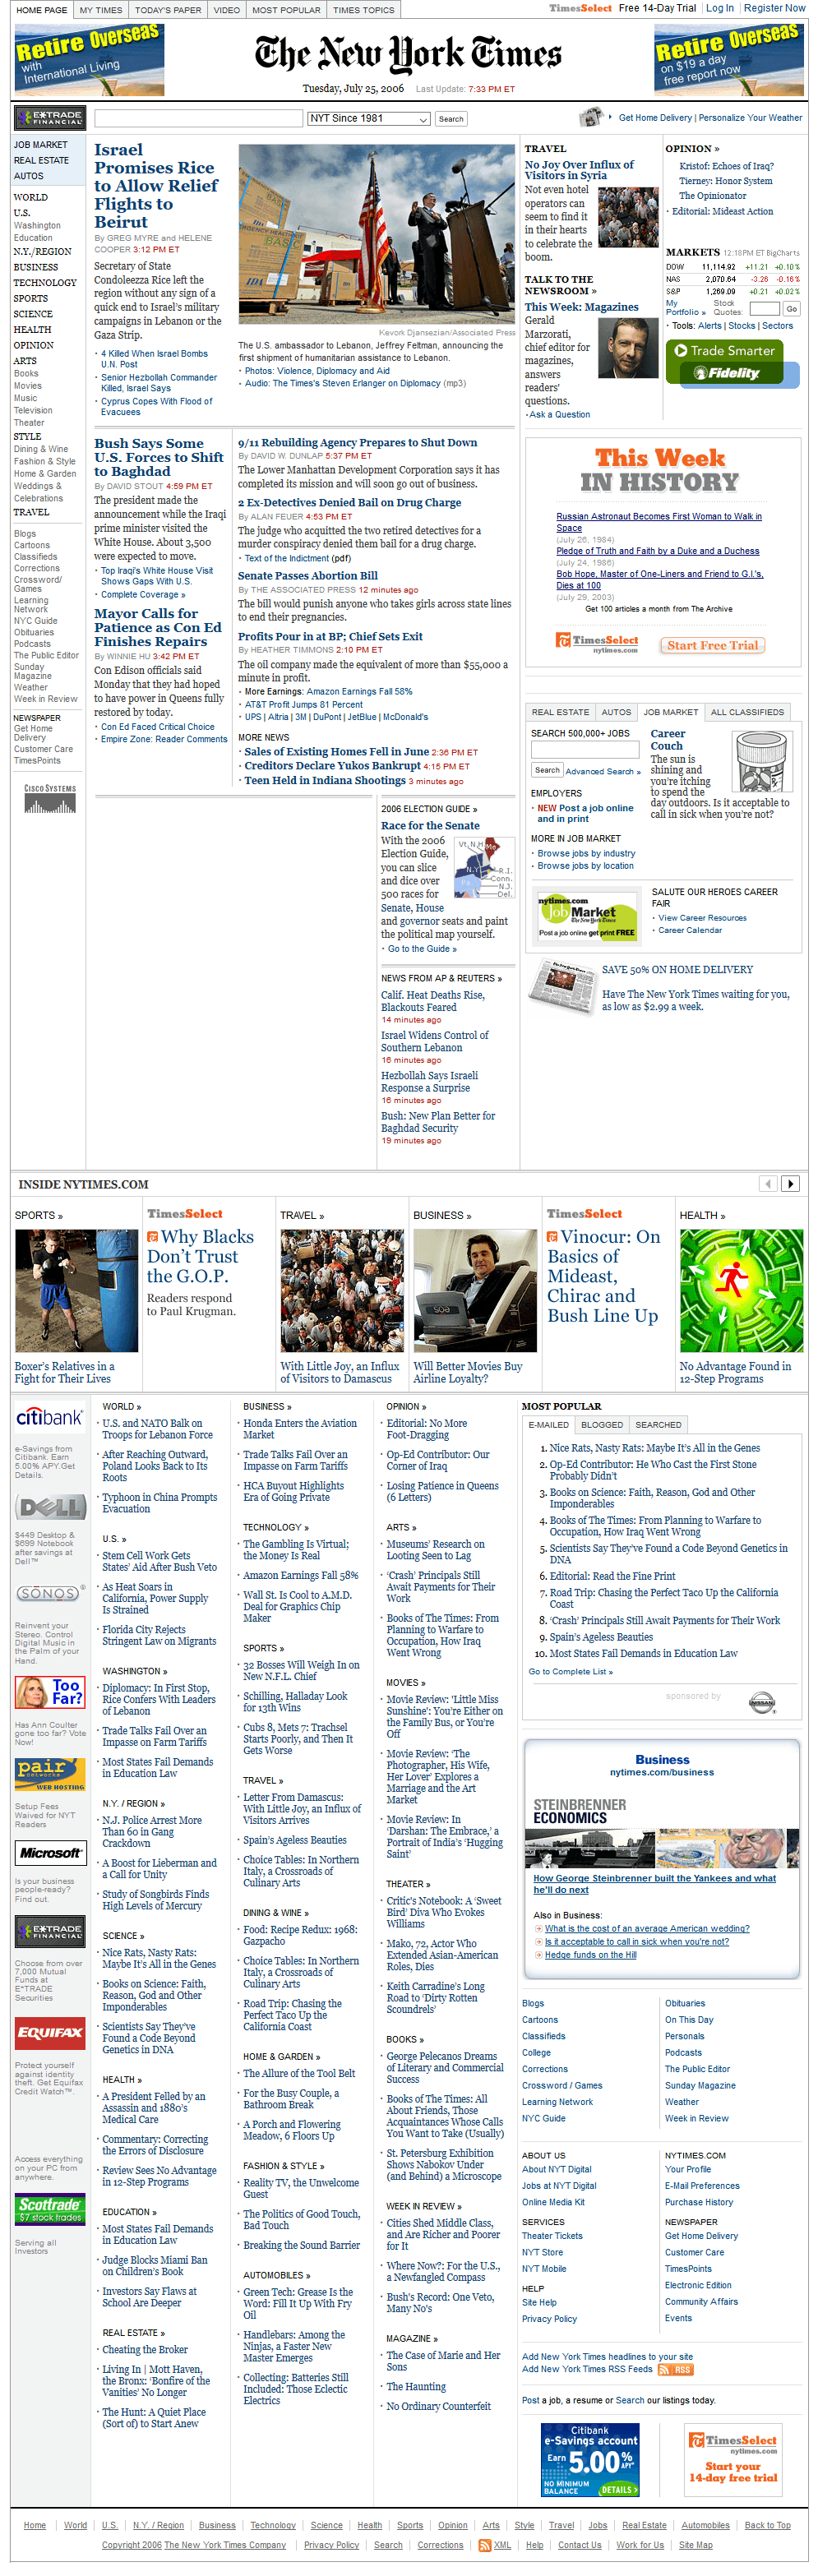 The New York Times in 2006